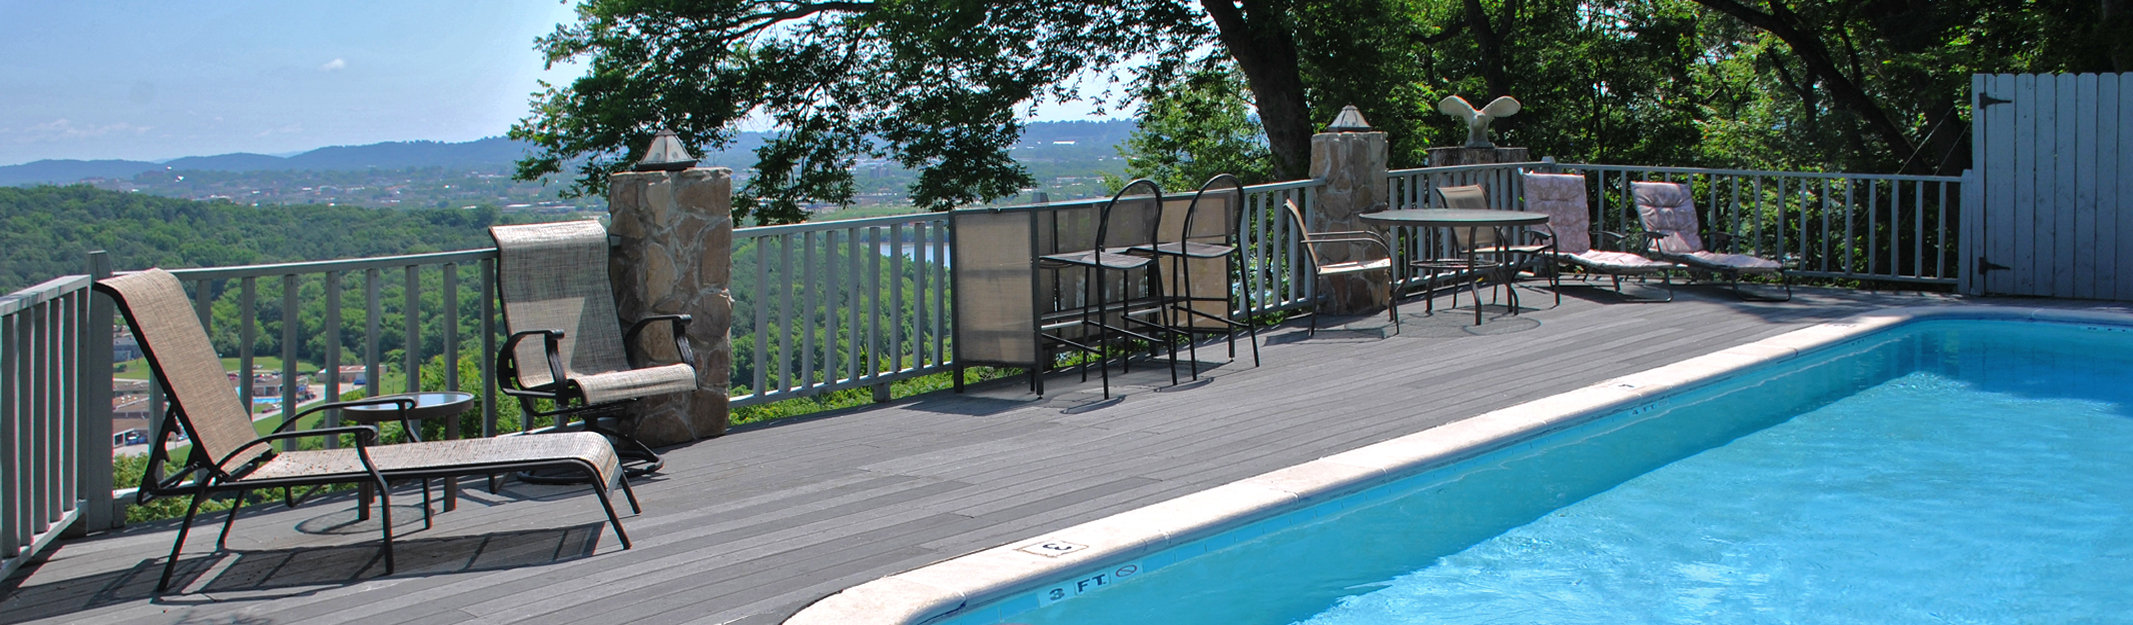 Riverview Inn deck and pool